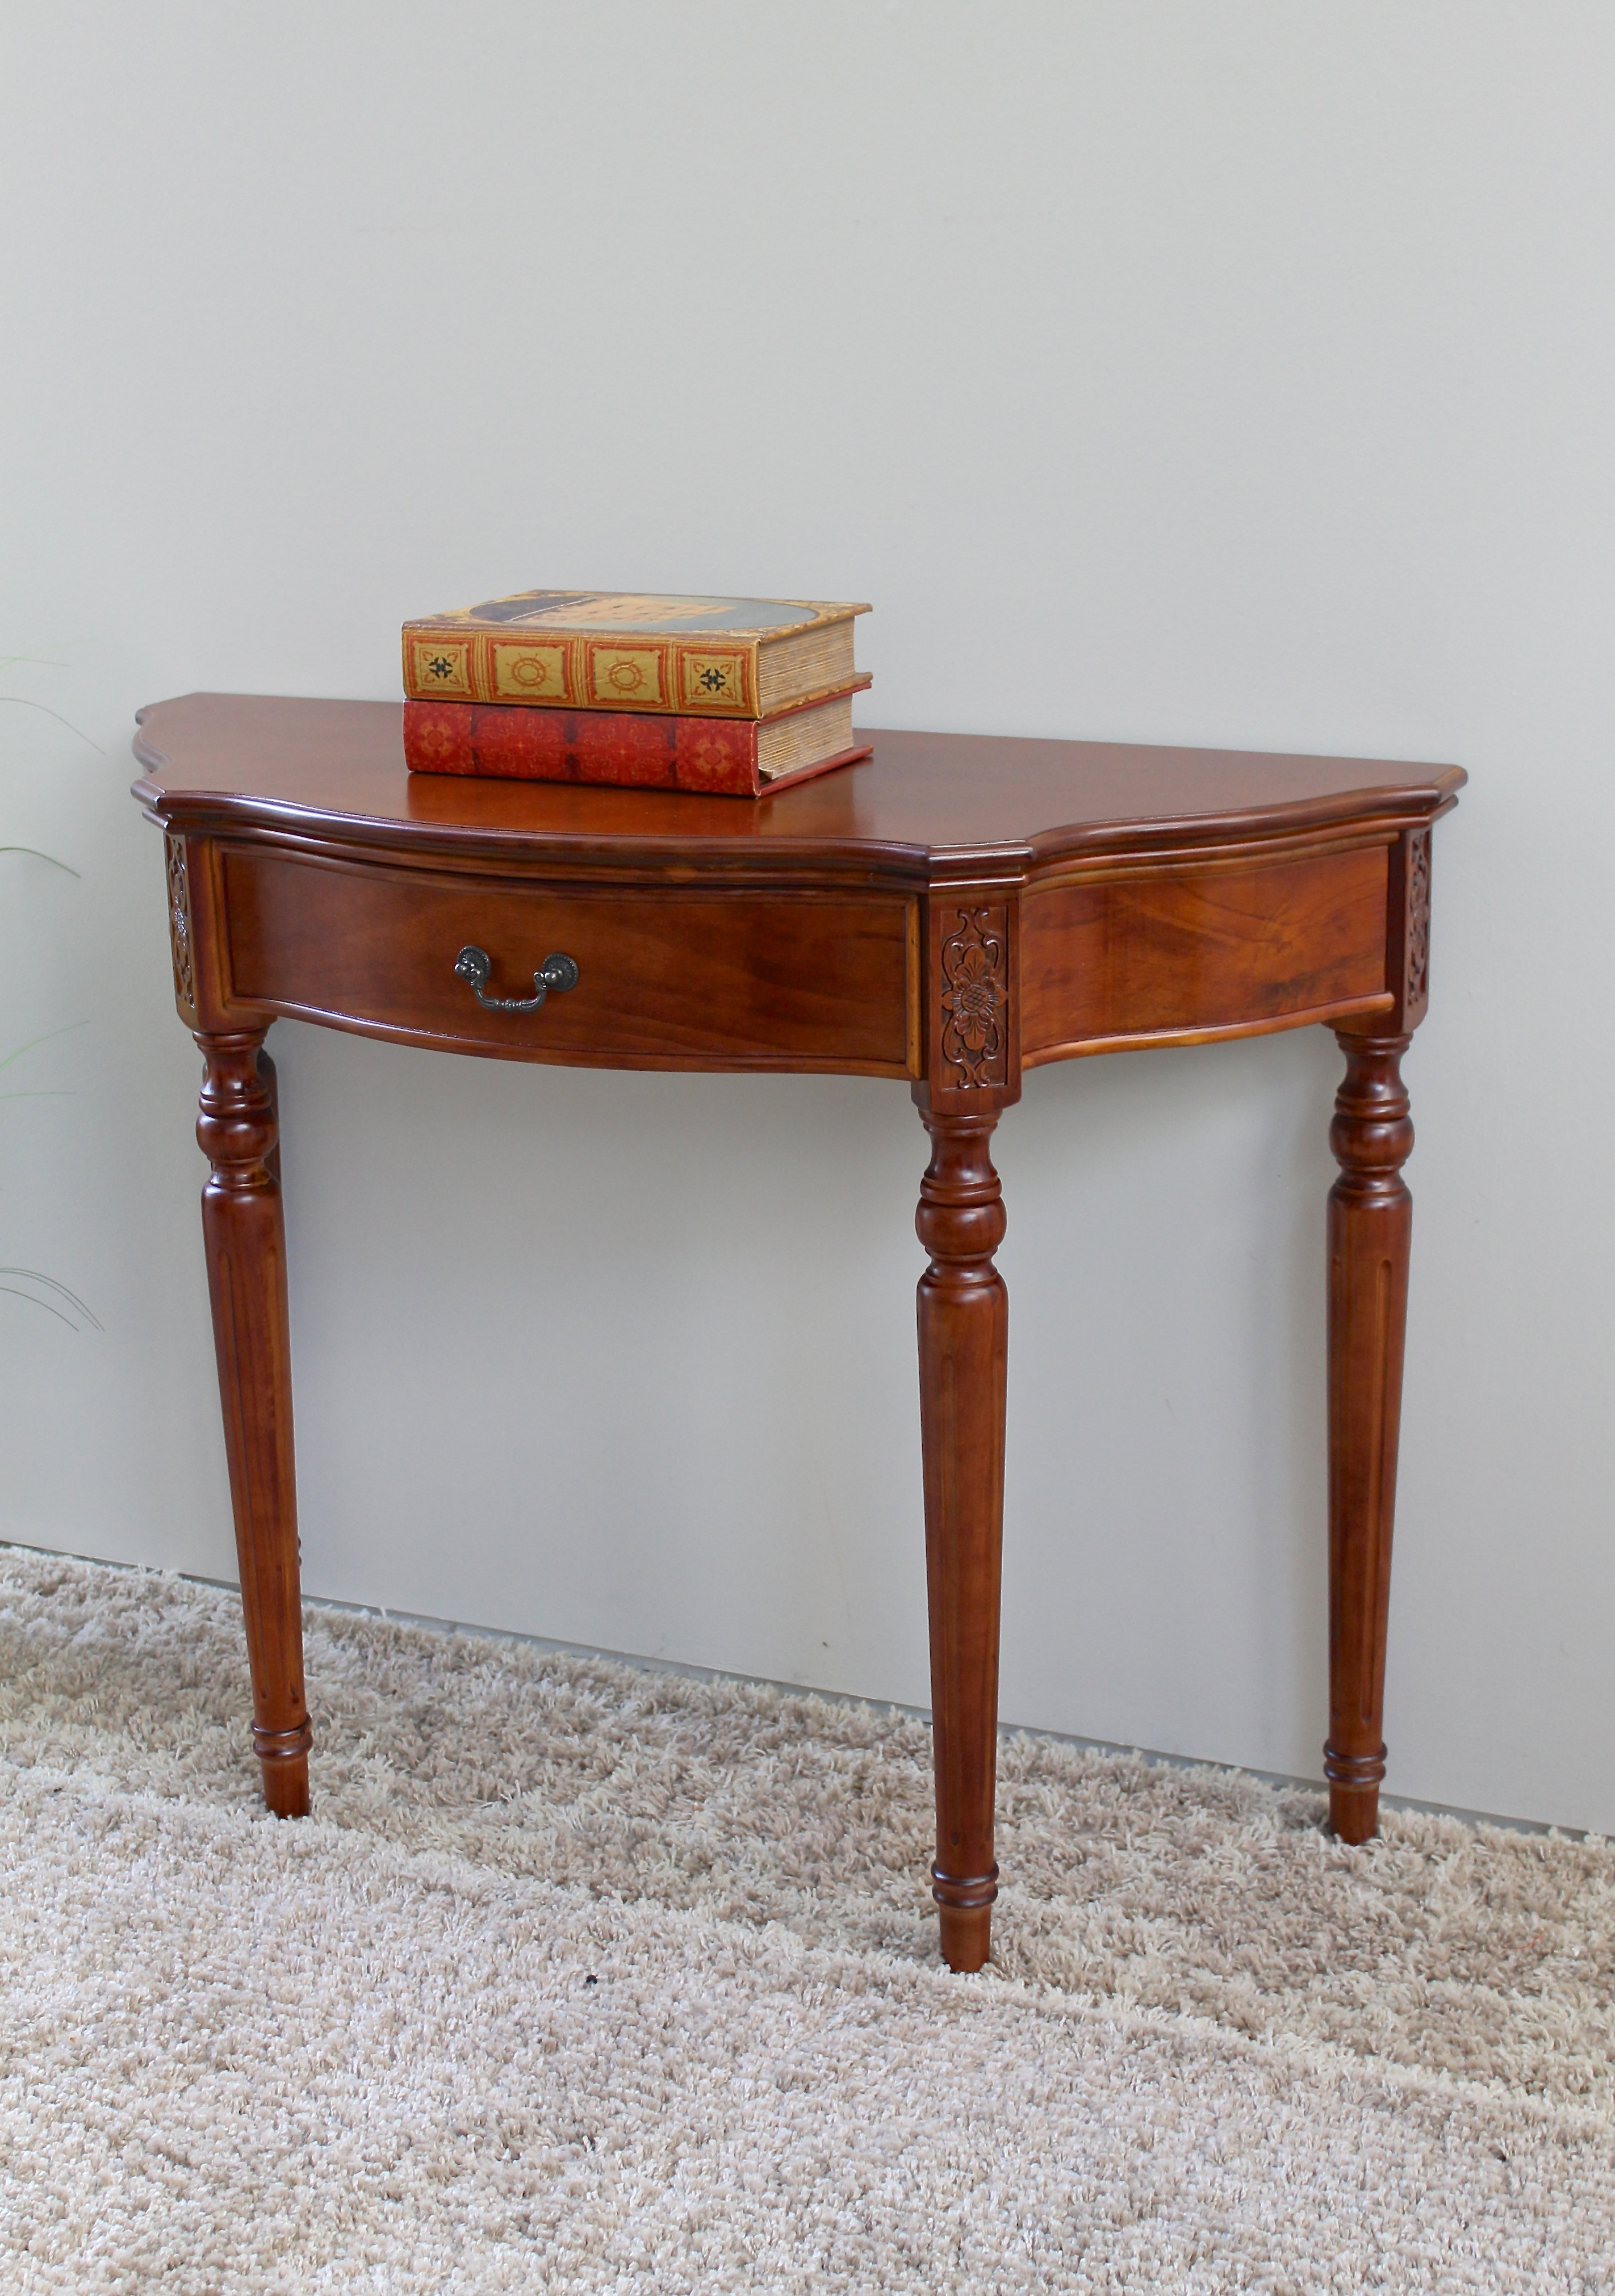 Carved Indian Furniture | Wayfair (View 8 of 20)